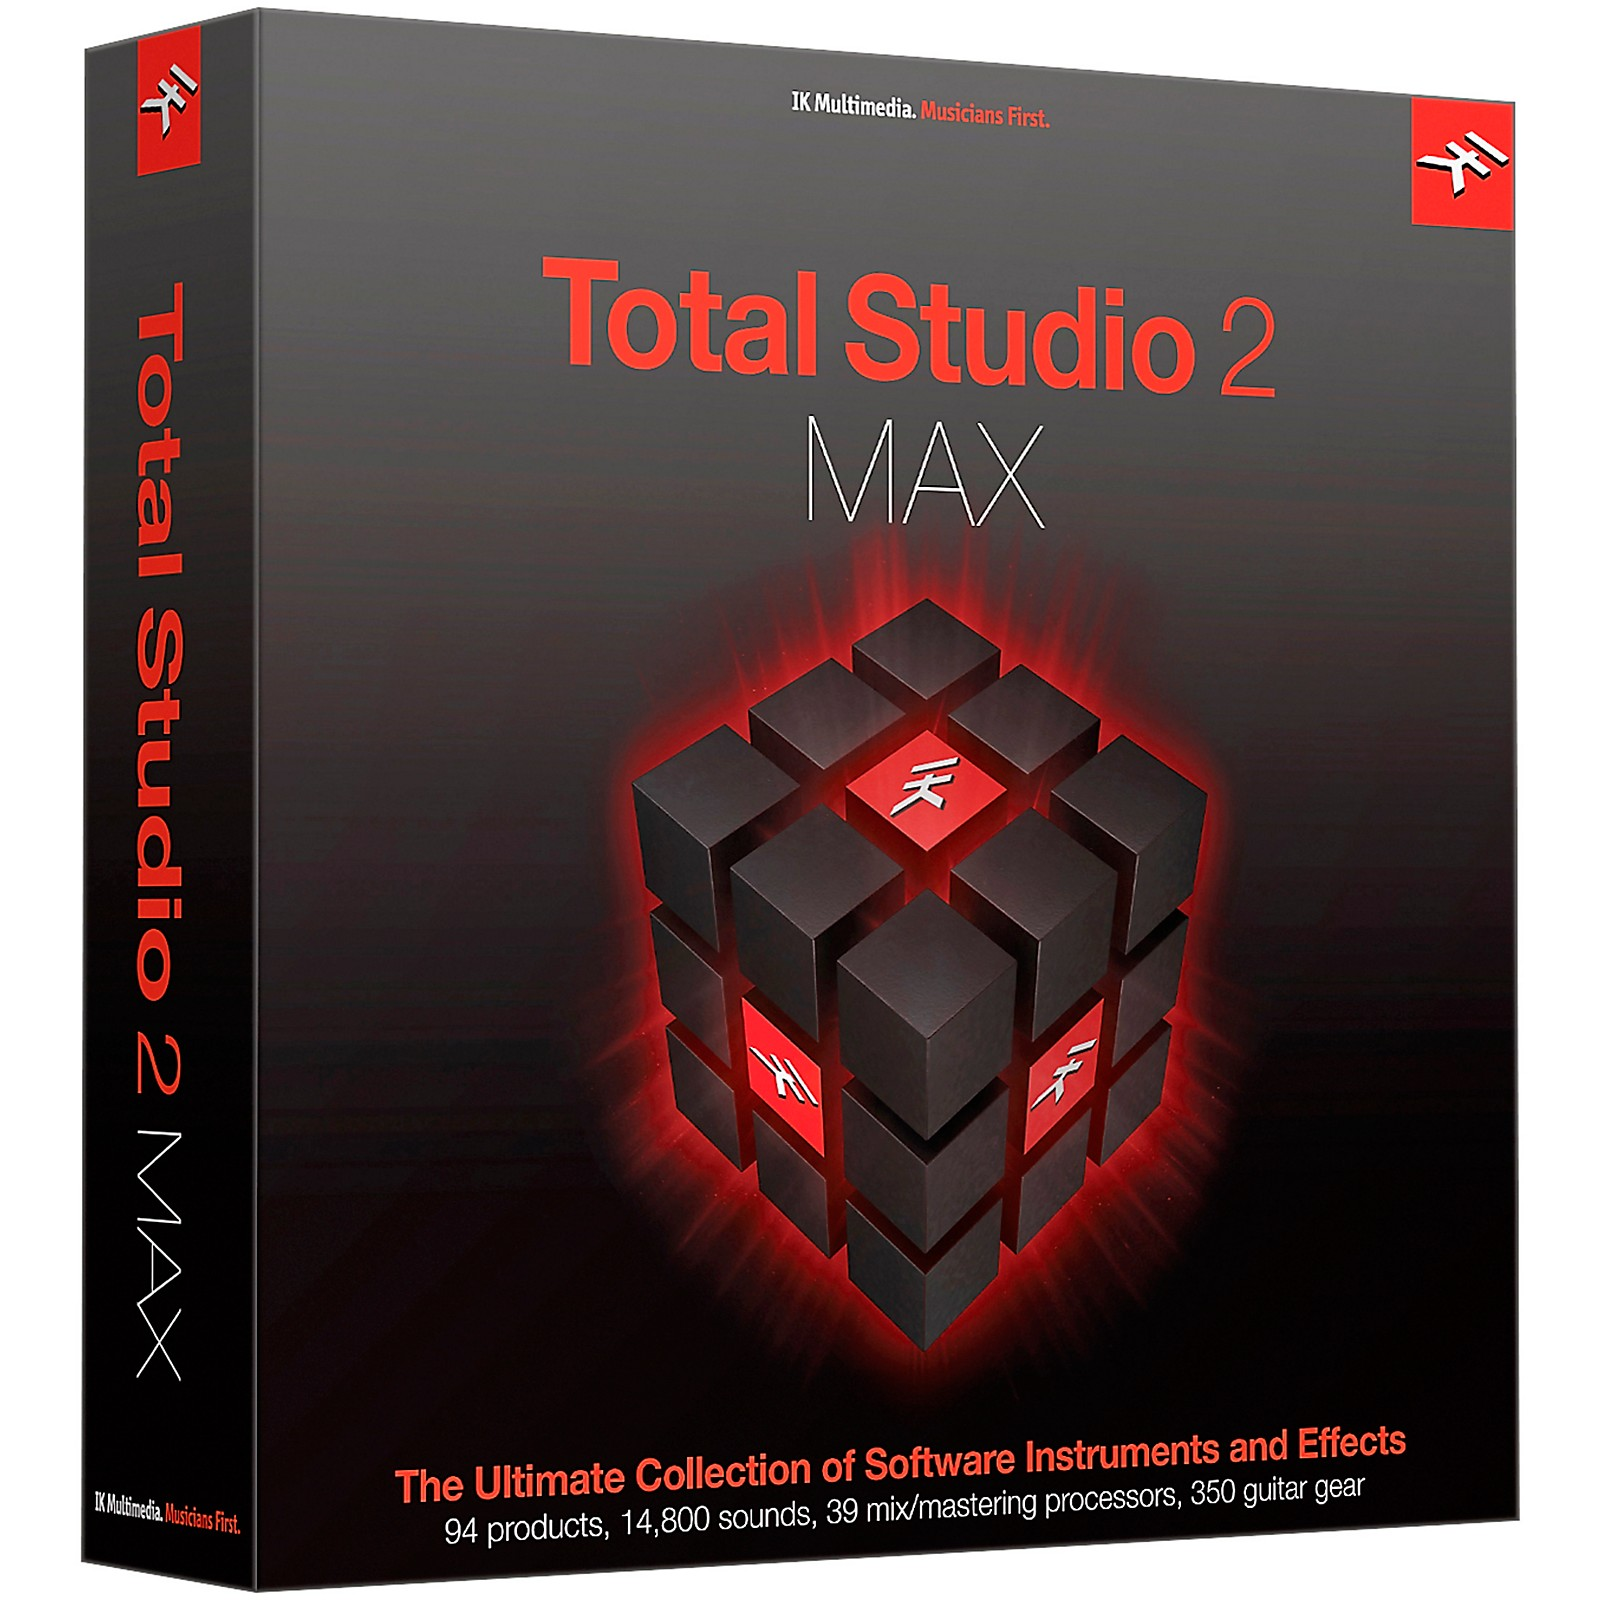 IK Multimedia Total Studio 2 MAX Upgrade from Any MAX product